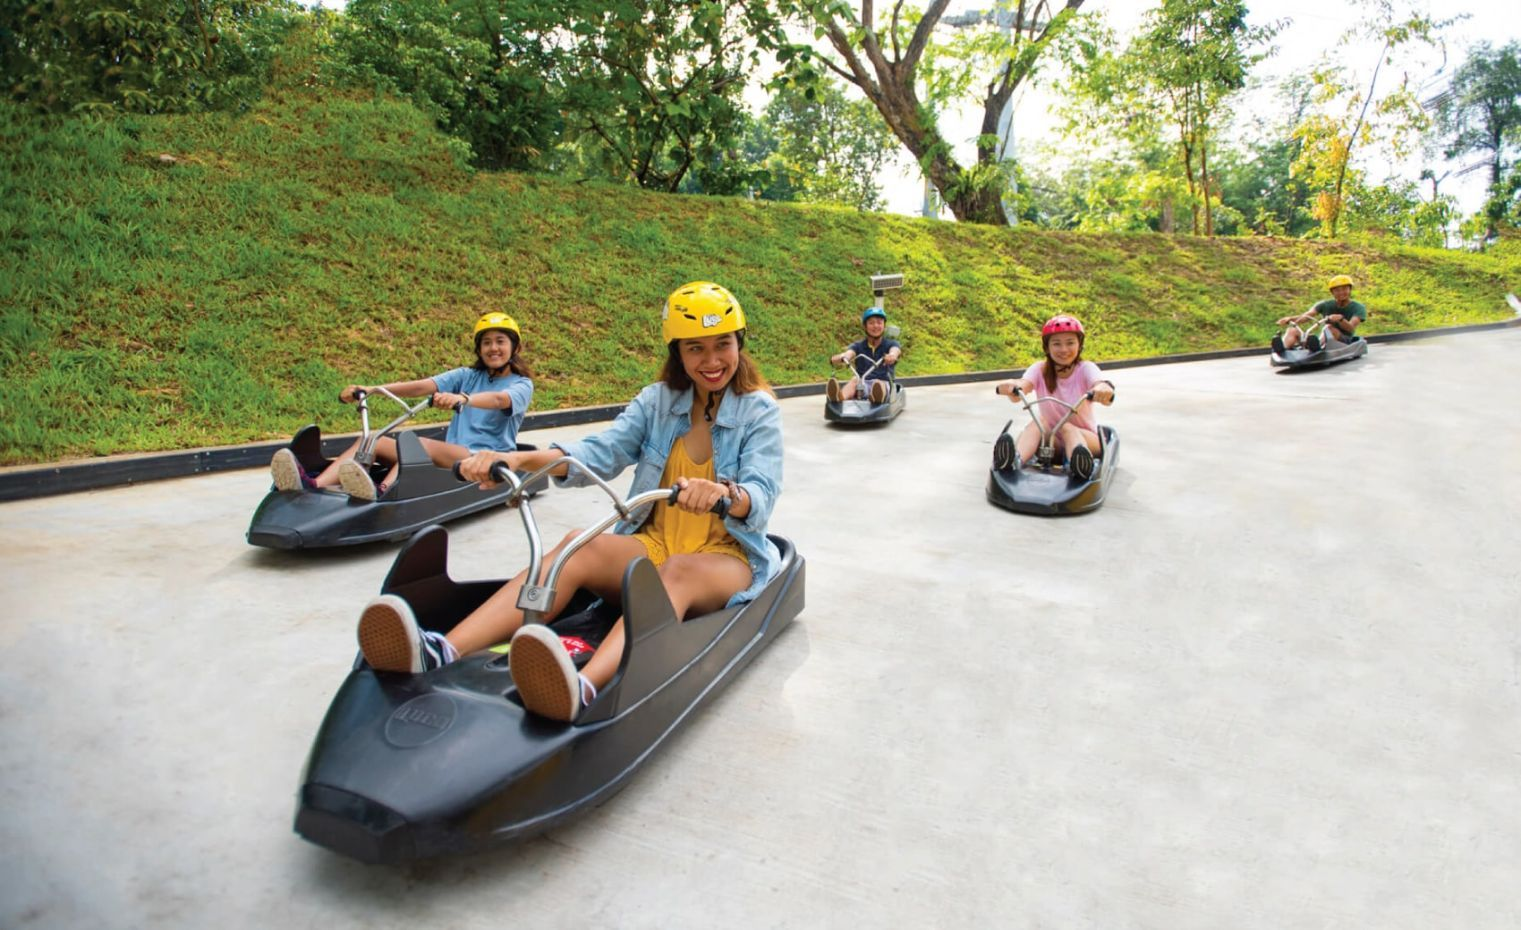 Skyline Luge in Sentosa